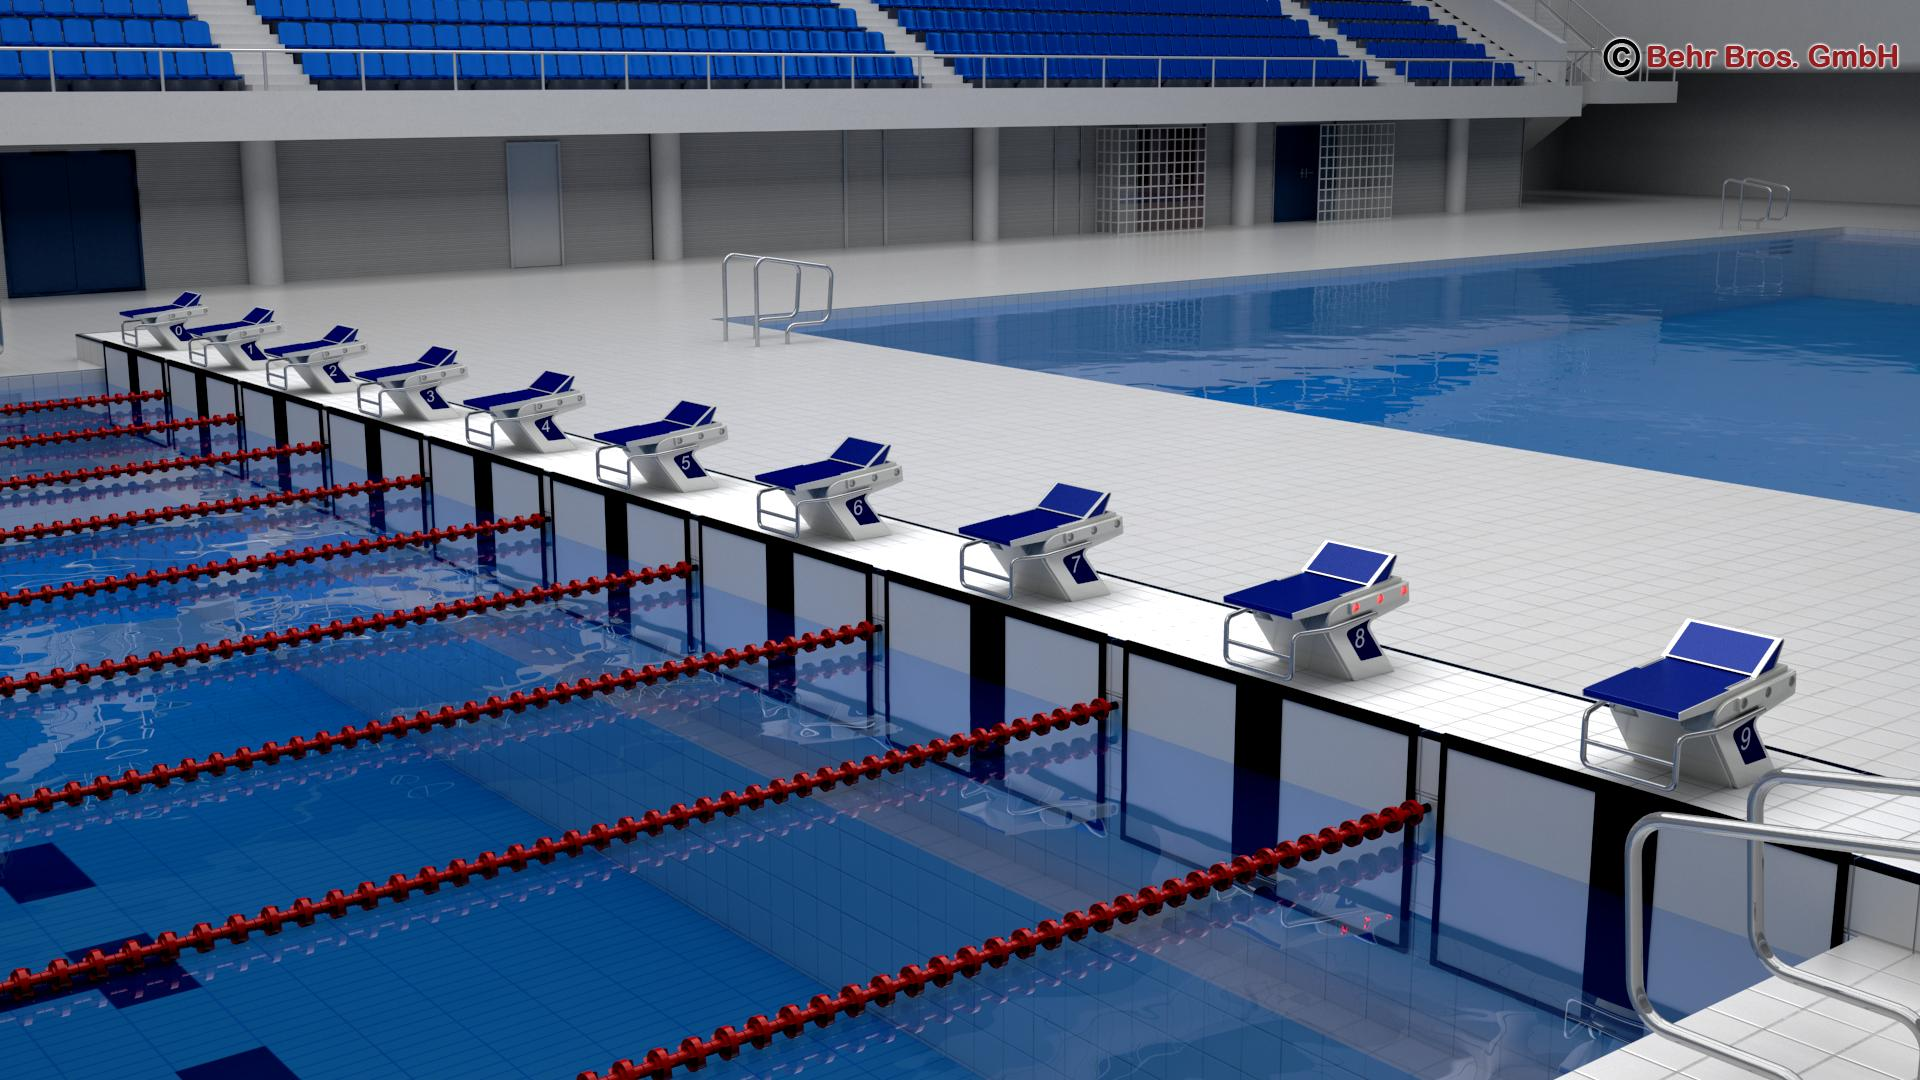 swim stadium 3d model 3ds max fbx c4d lwo ma mb obj 204432